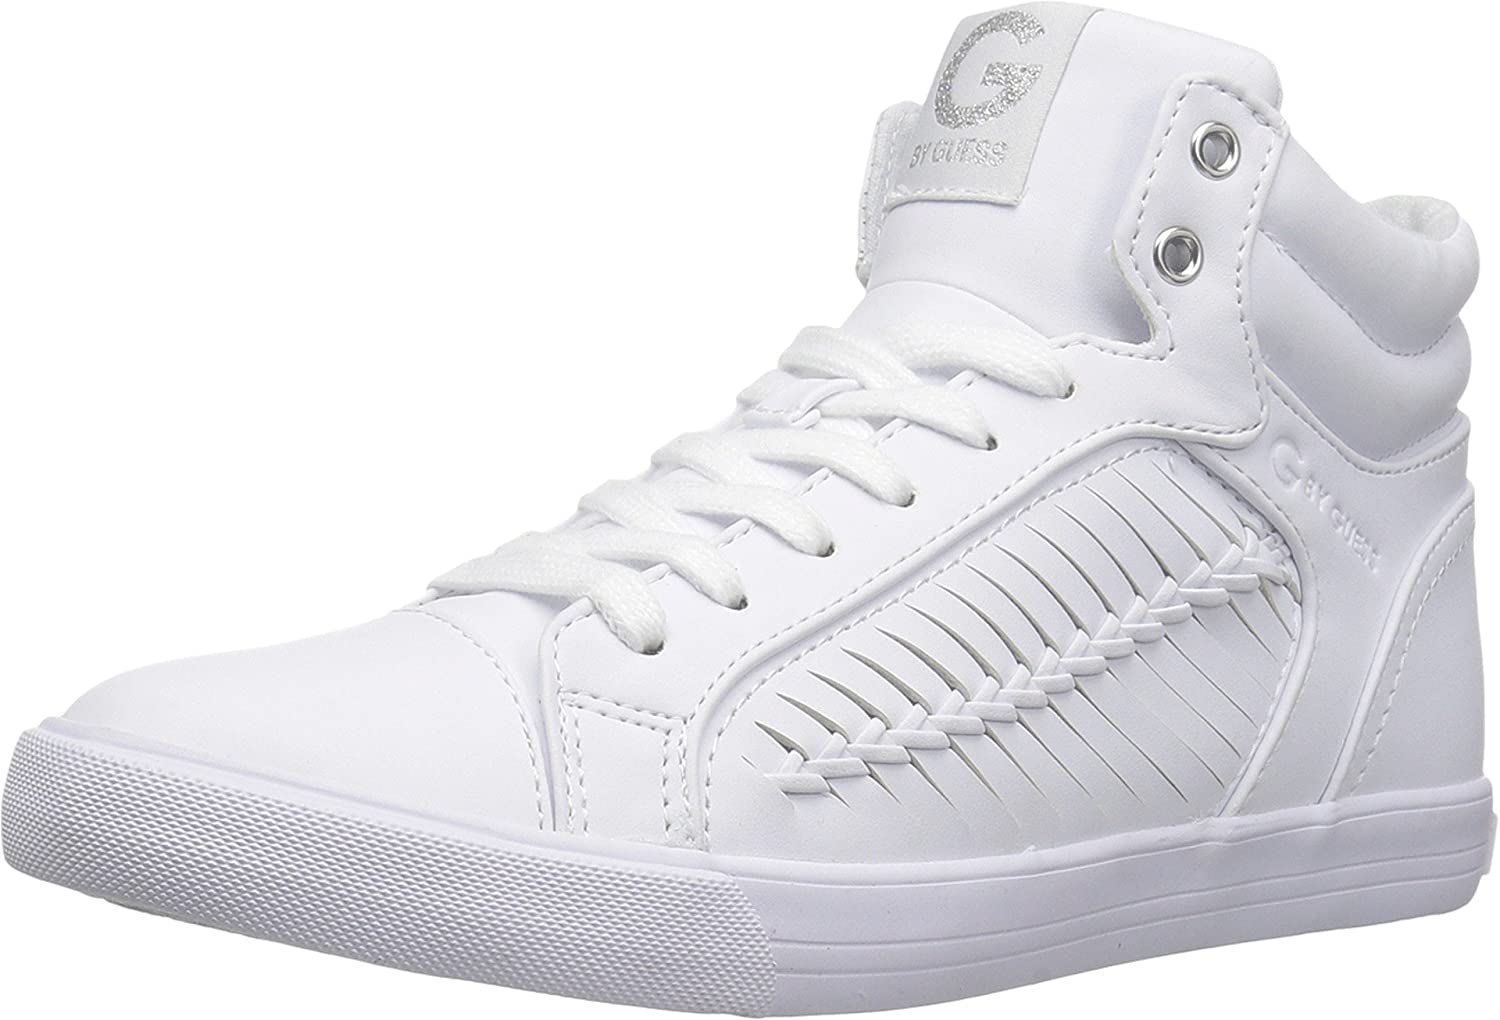 G by Guess Womens Olisa Hight Top Lace Up Fashion Sneakers